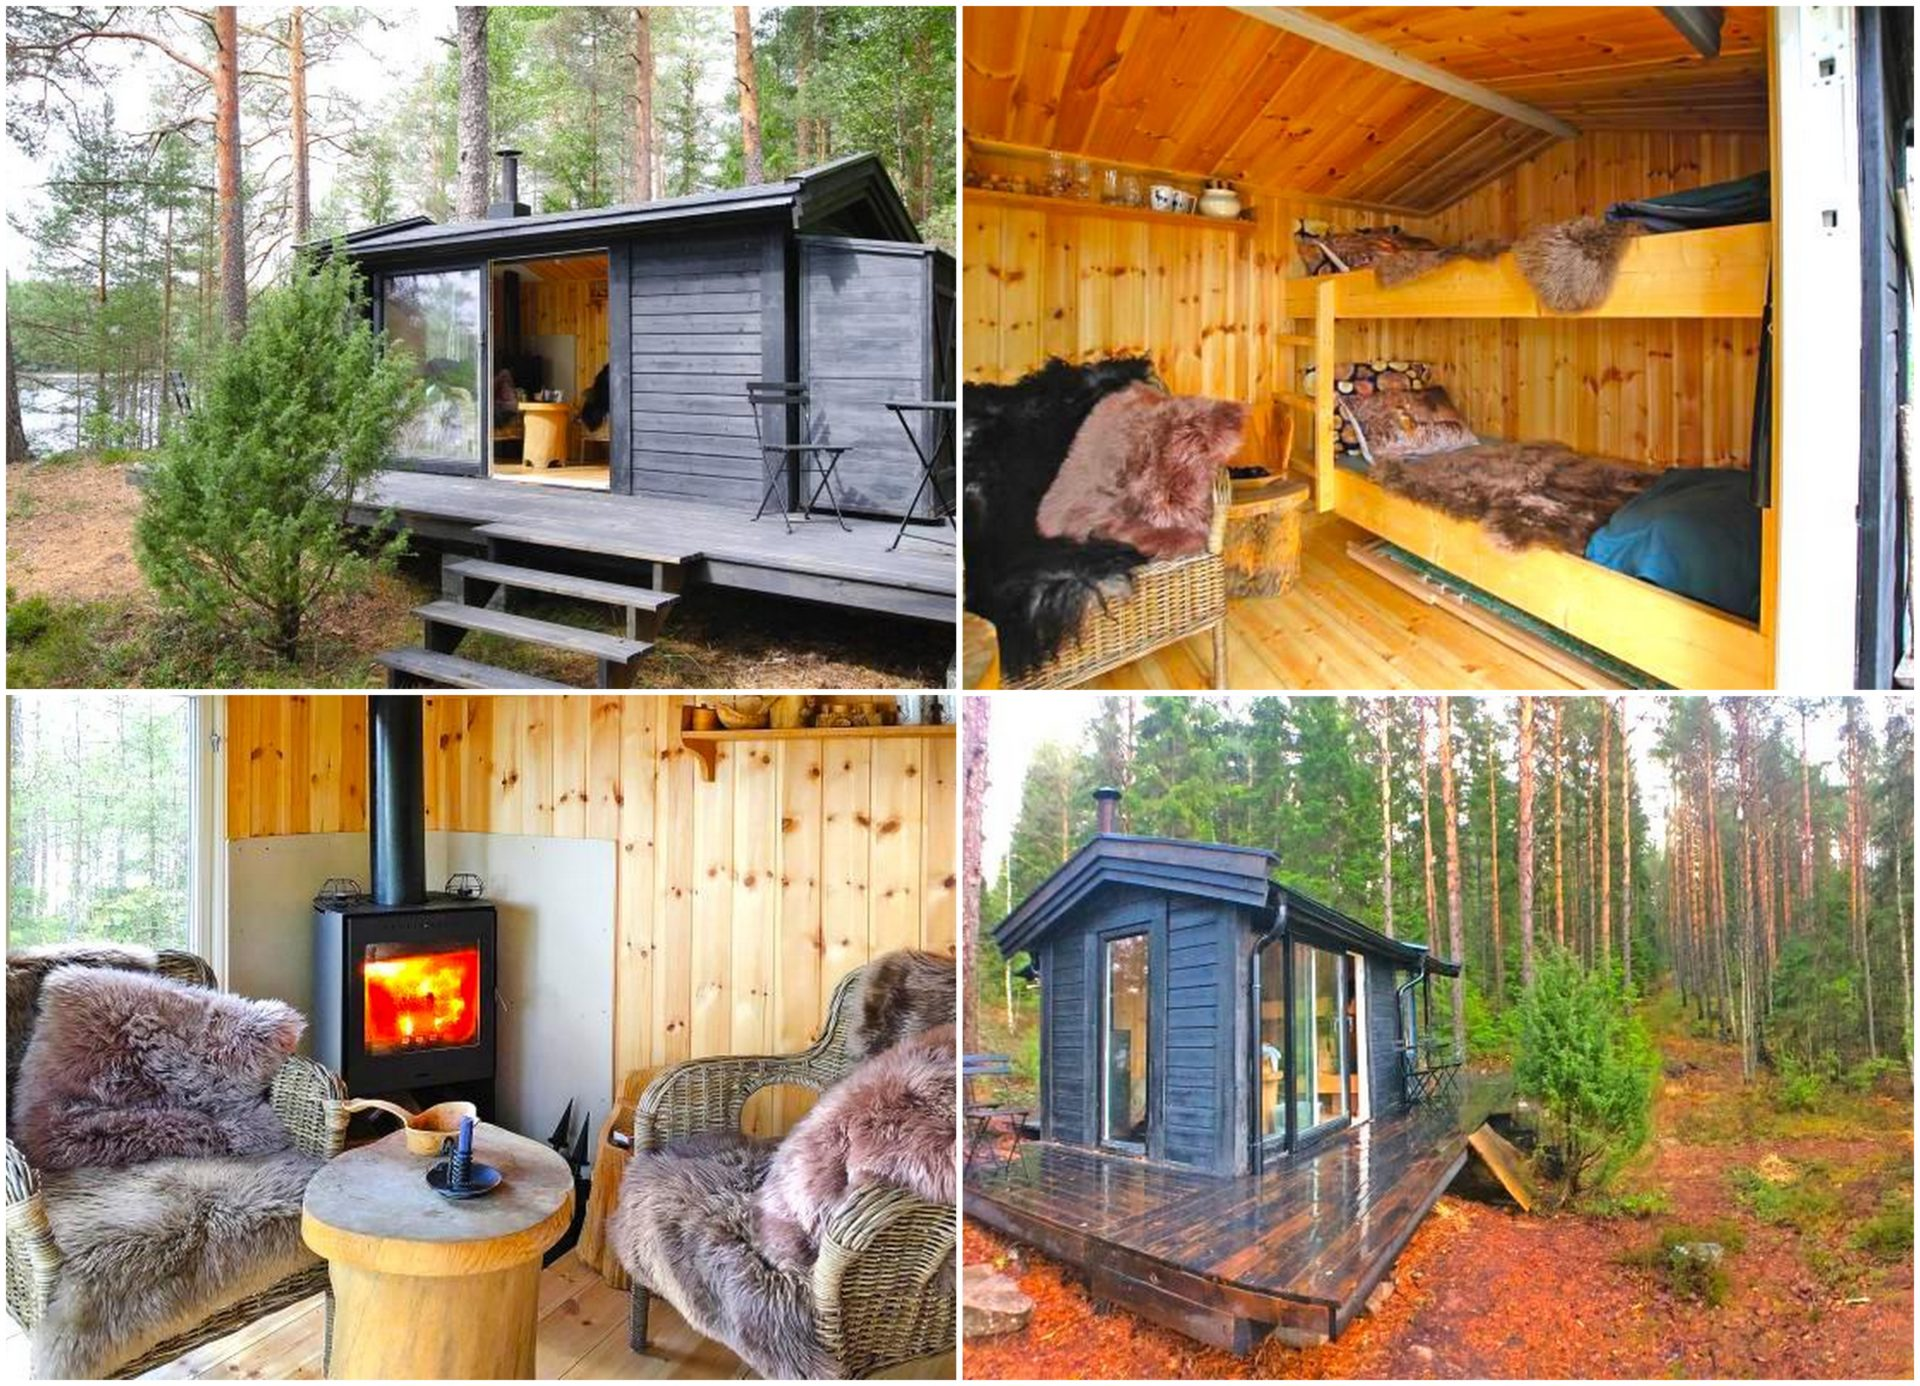 Urlaub in Tiny House